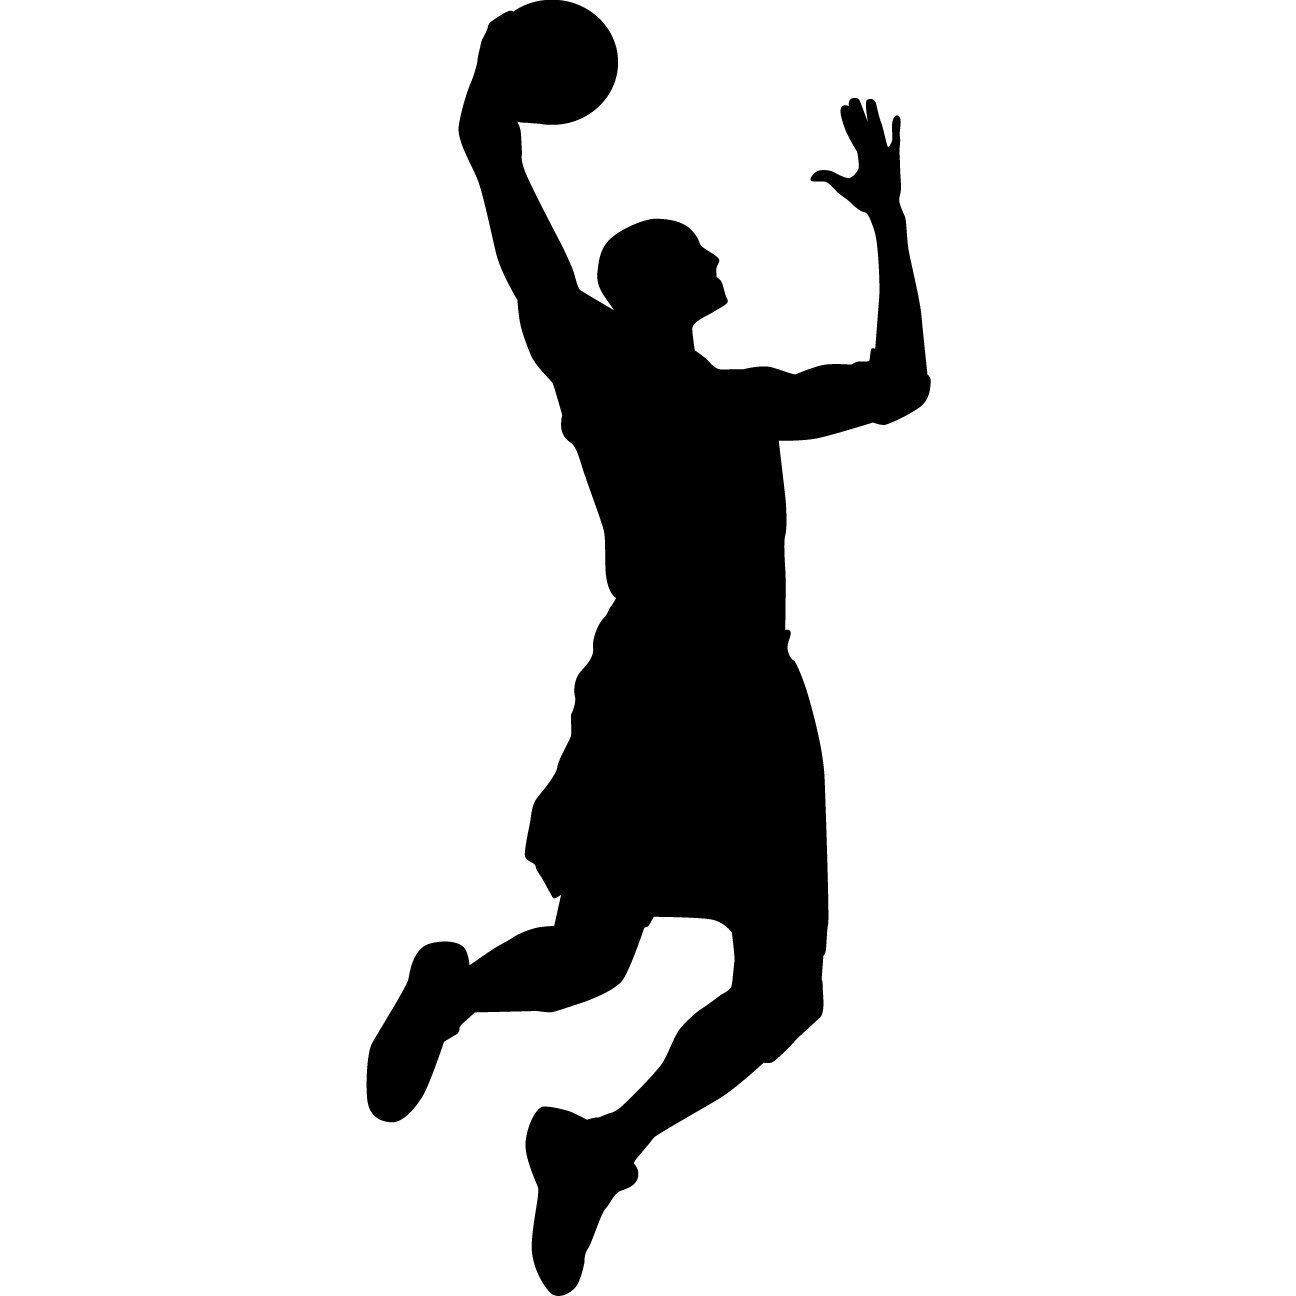 1296x1296 Basketball Silhouette